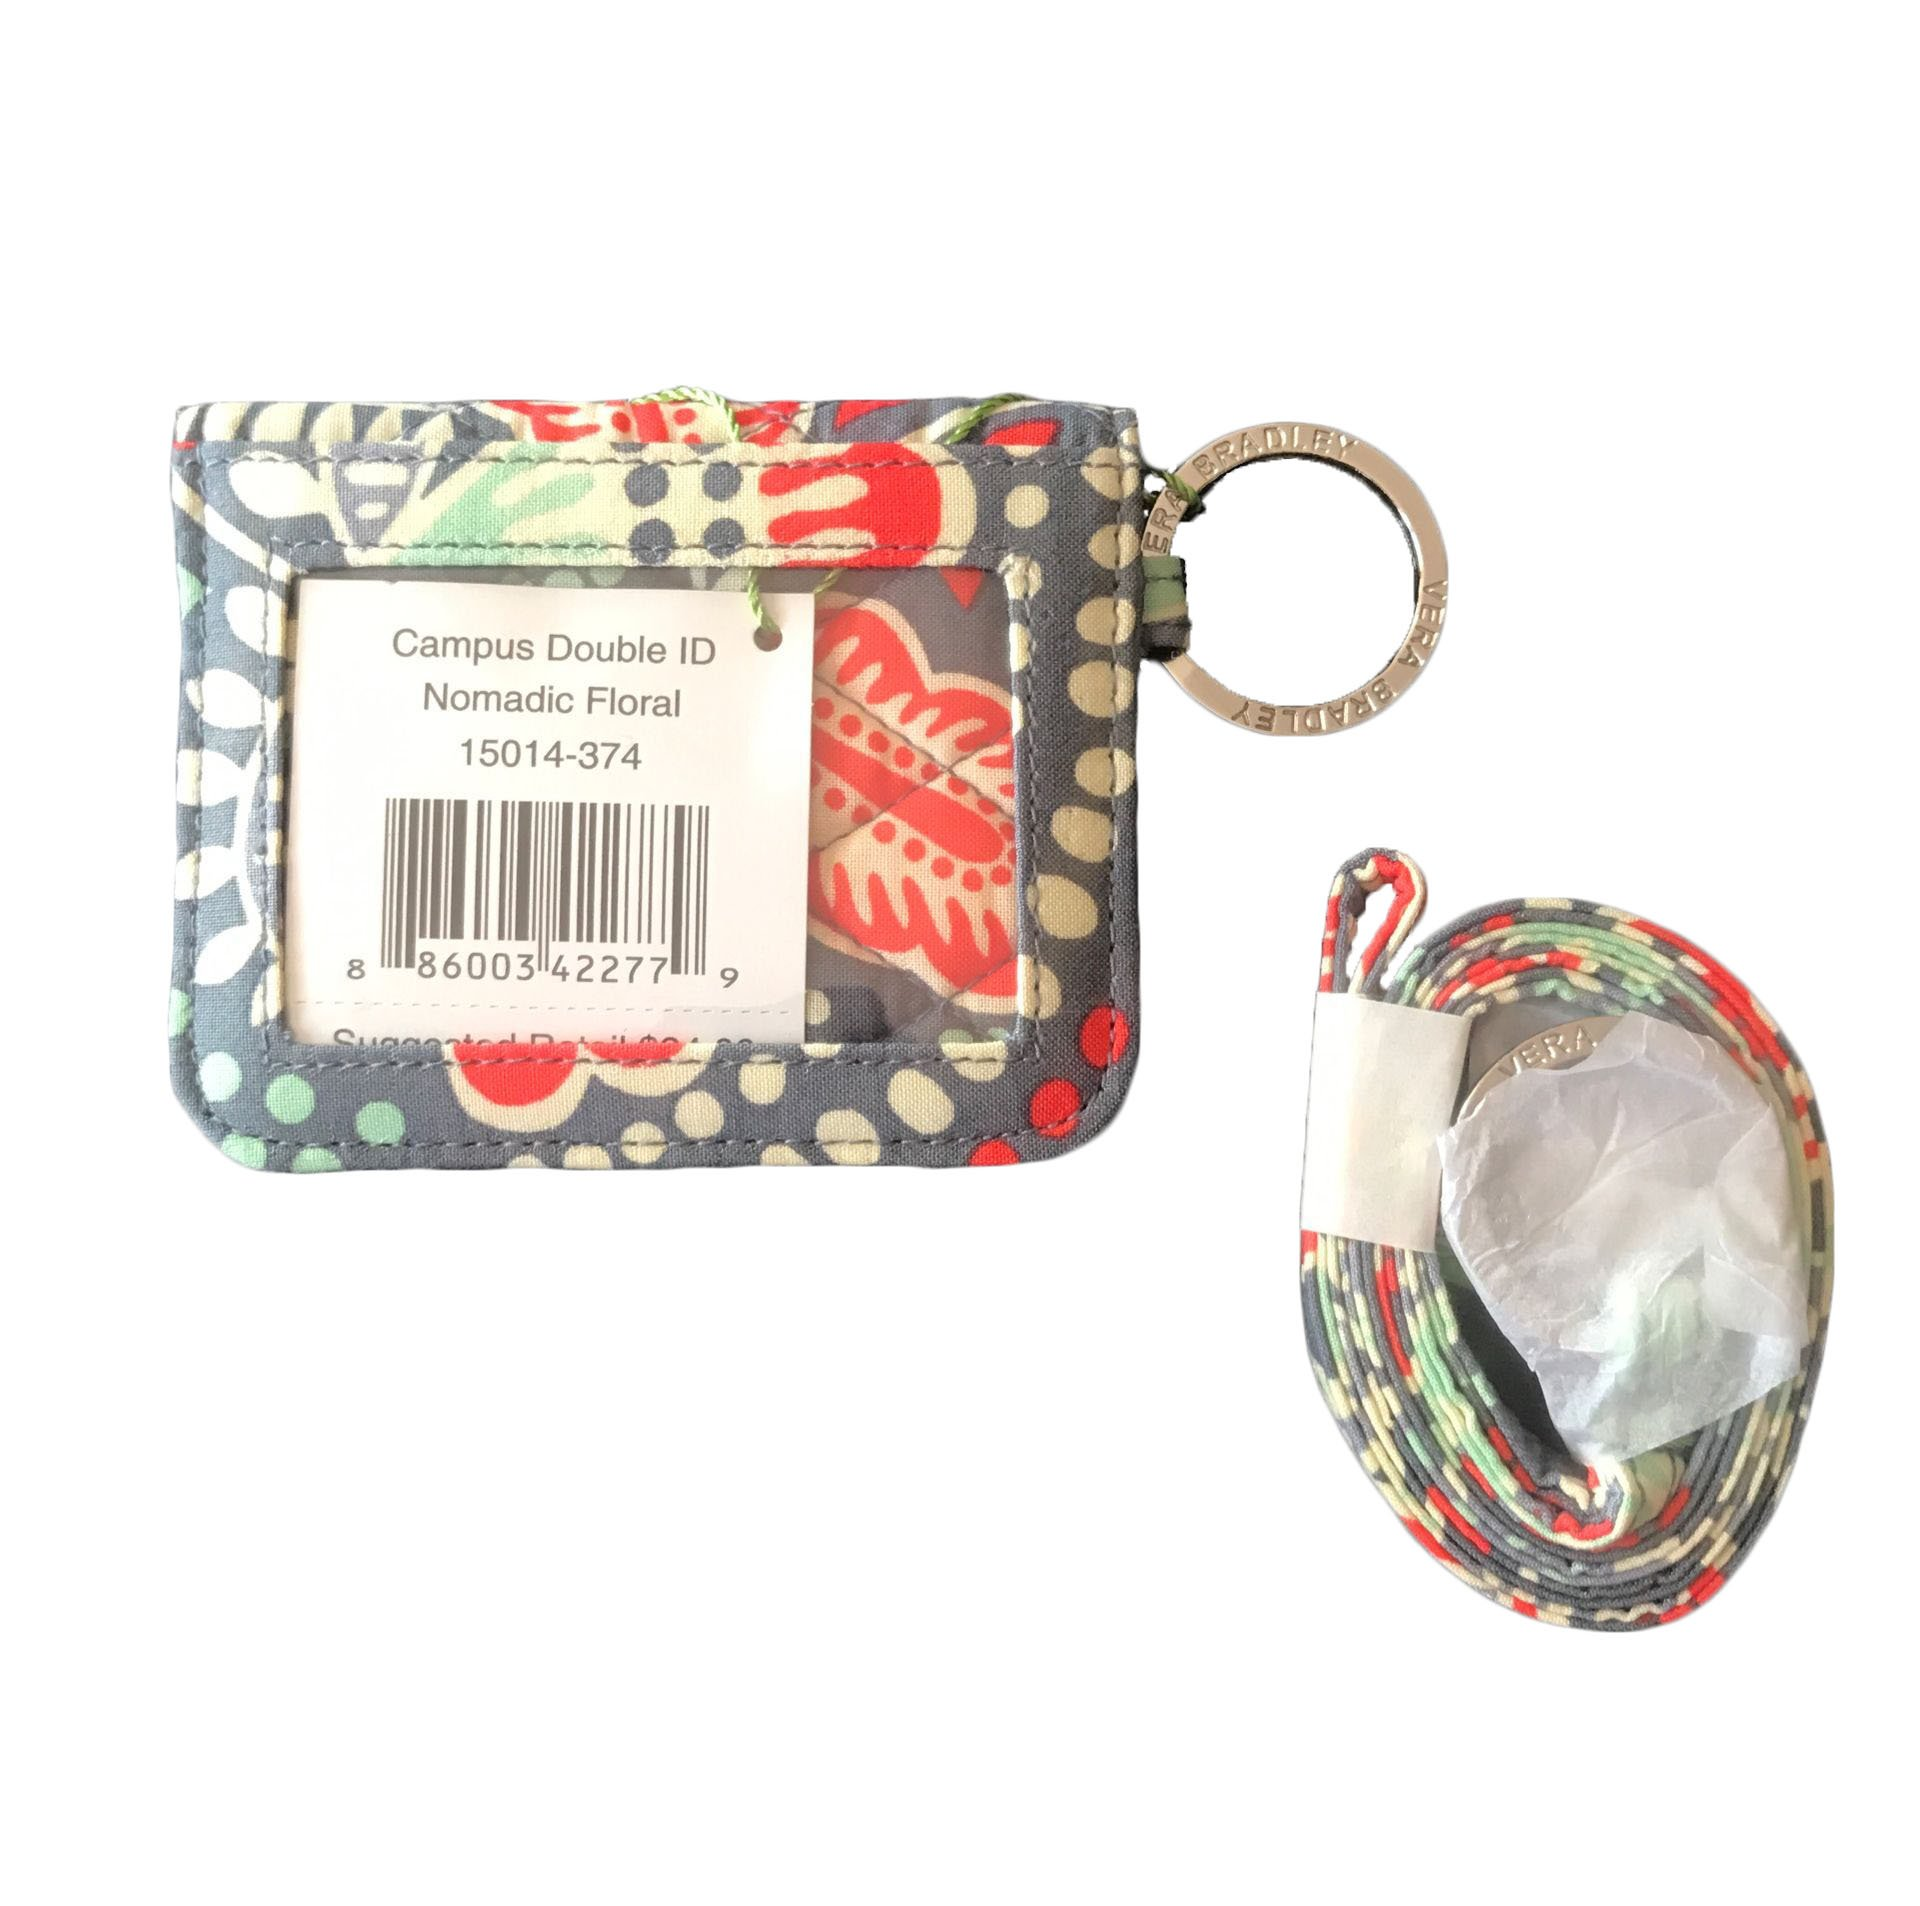 Vera Bradley Campus Double ID and Lanyard in Nomadic Floral